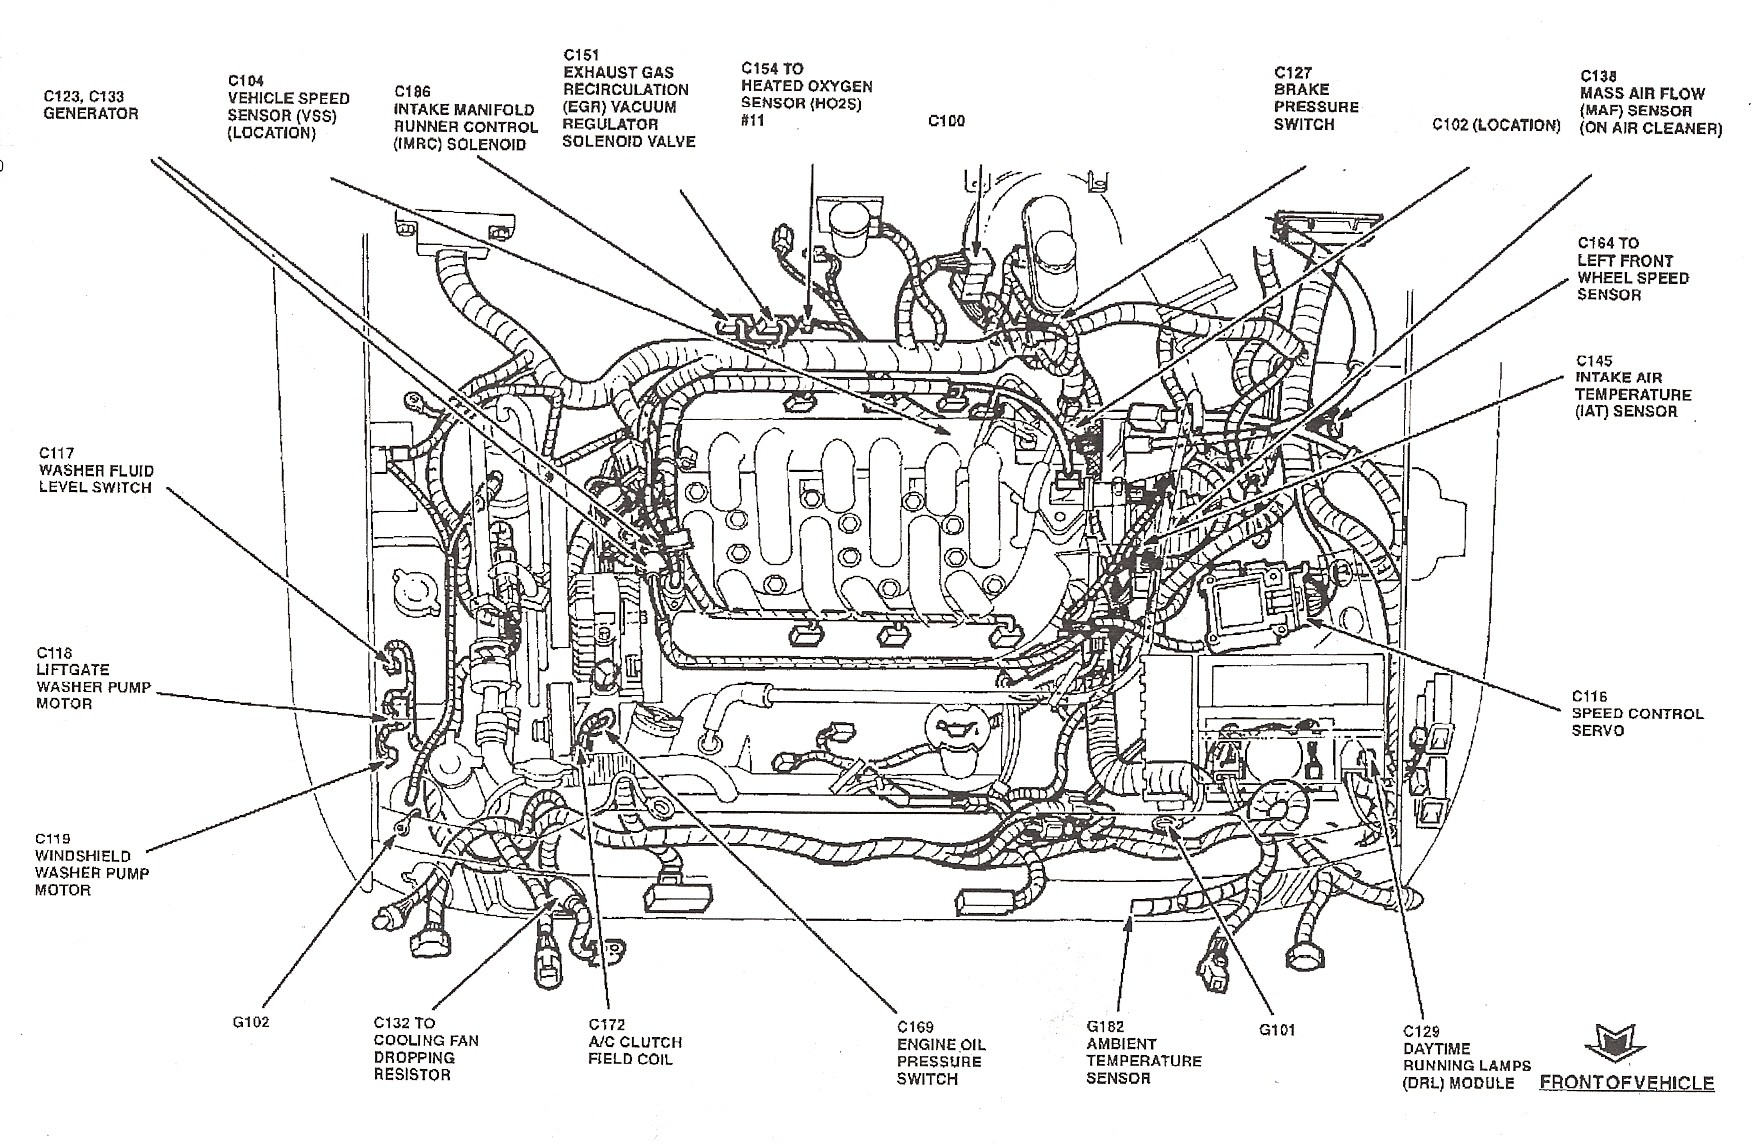 2001 ford focus zx3 engine diagram 14 10 myquestraworld de \u2022 Hyundai Sonata Fuse Box 2001 ford focus engine hose diagram on 2002 ford focus engine rh 9 20 kanapee gastroteam de 03 ford focus engine wiring diagrams ford focus 2 0 engine